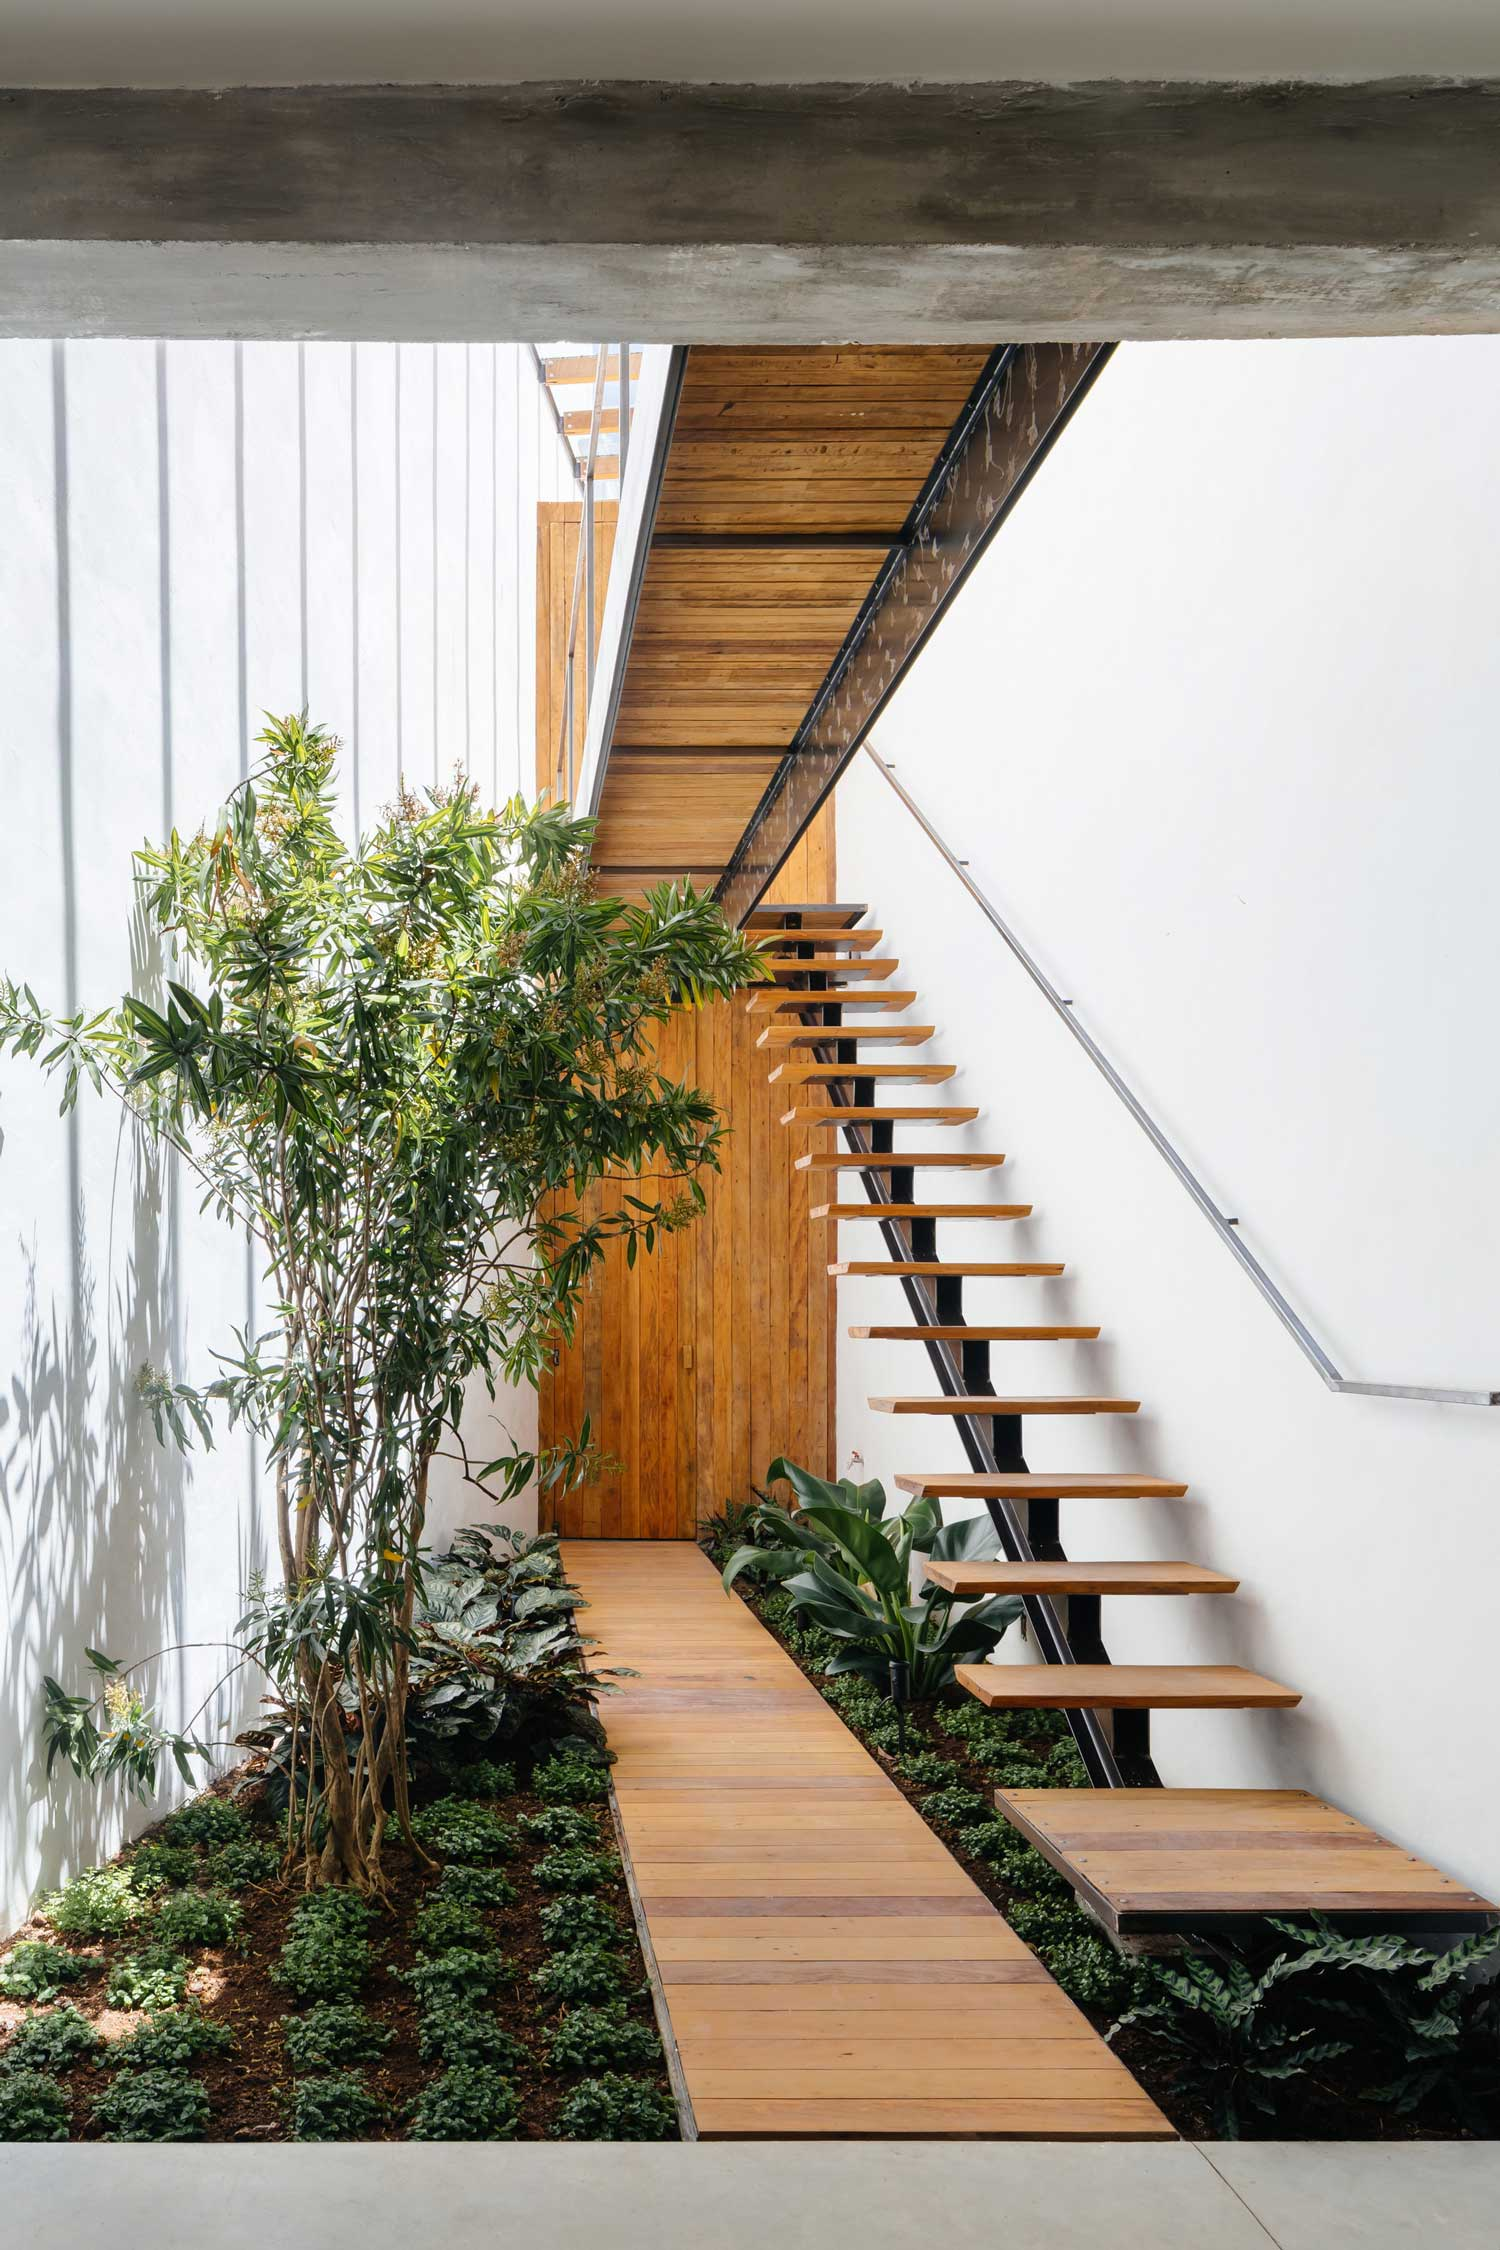 Best 25 Modern Staircase Ideas On Pinterest: Retail Store With An Indoor Garden In São Paulo By Vao